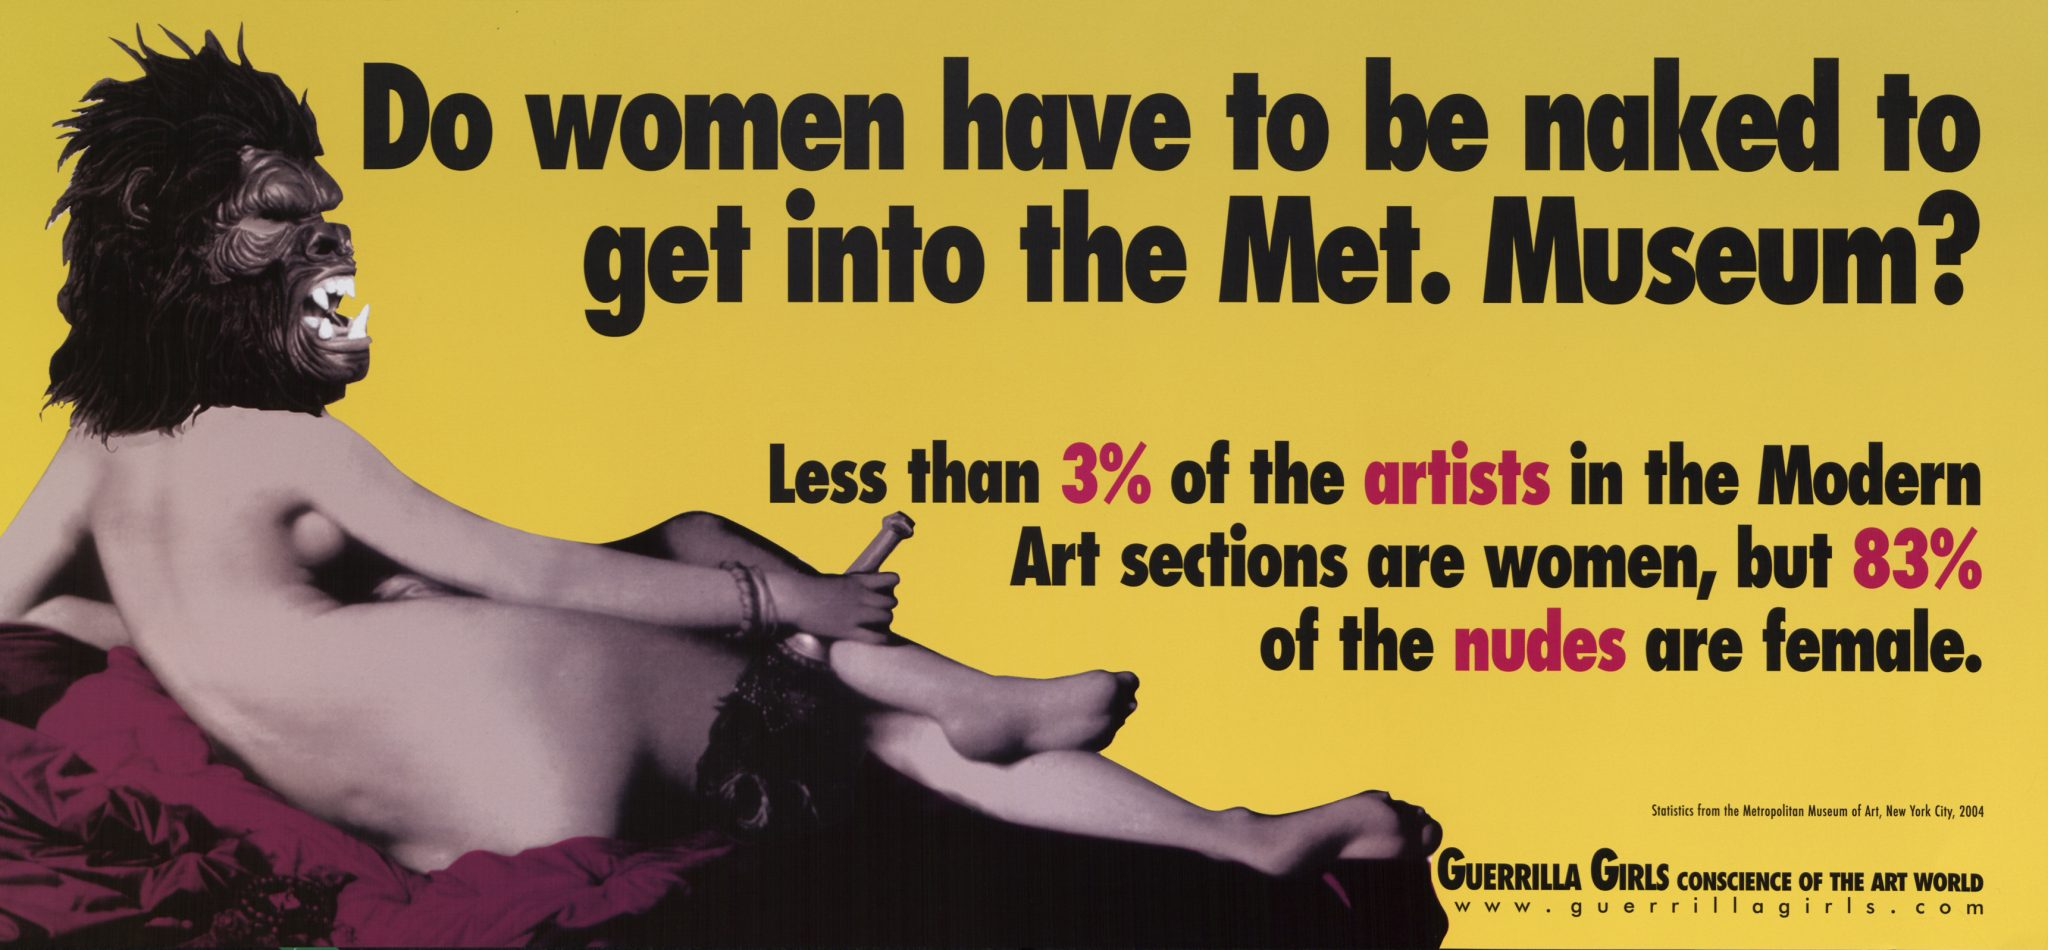 01 guerrilla girls Plakat